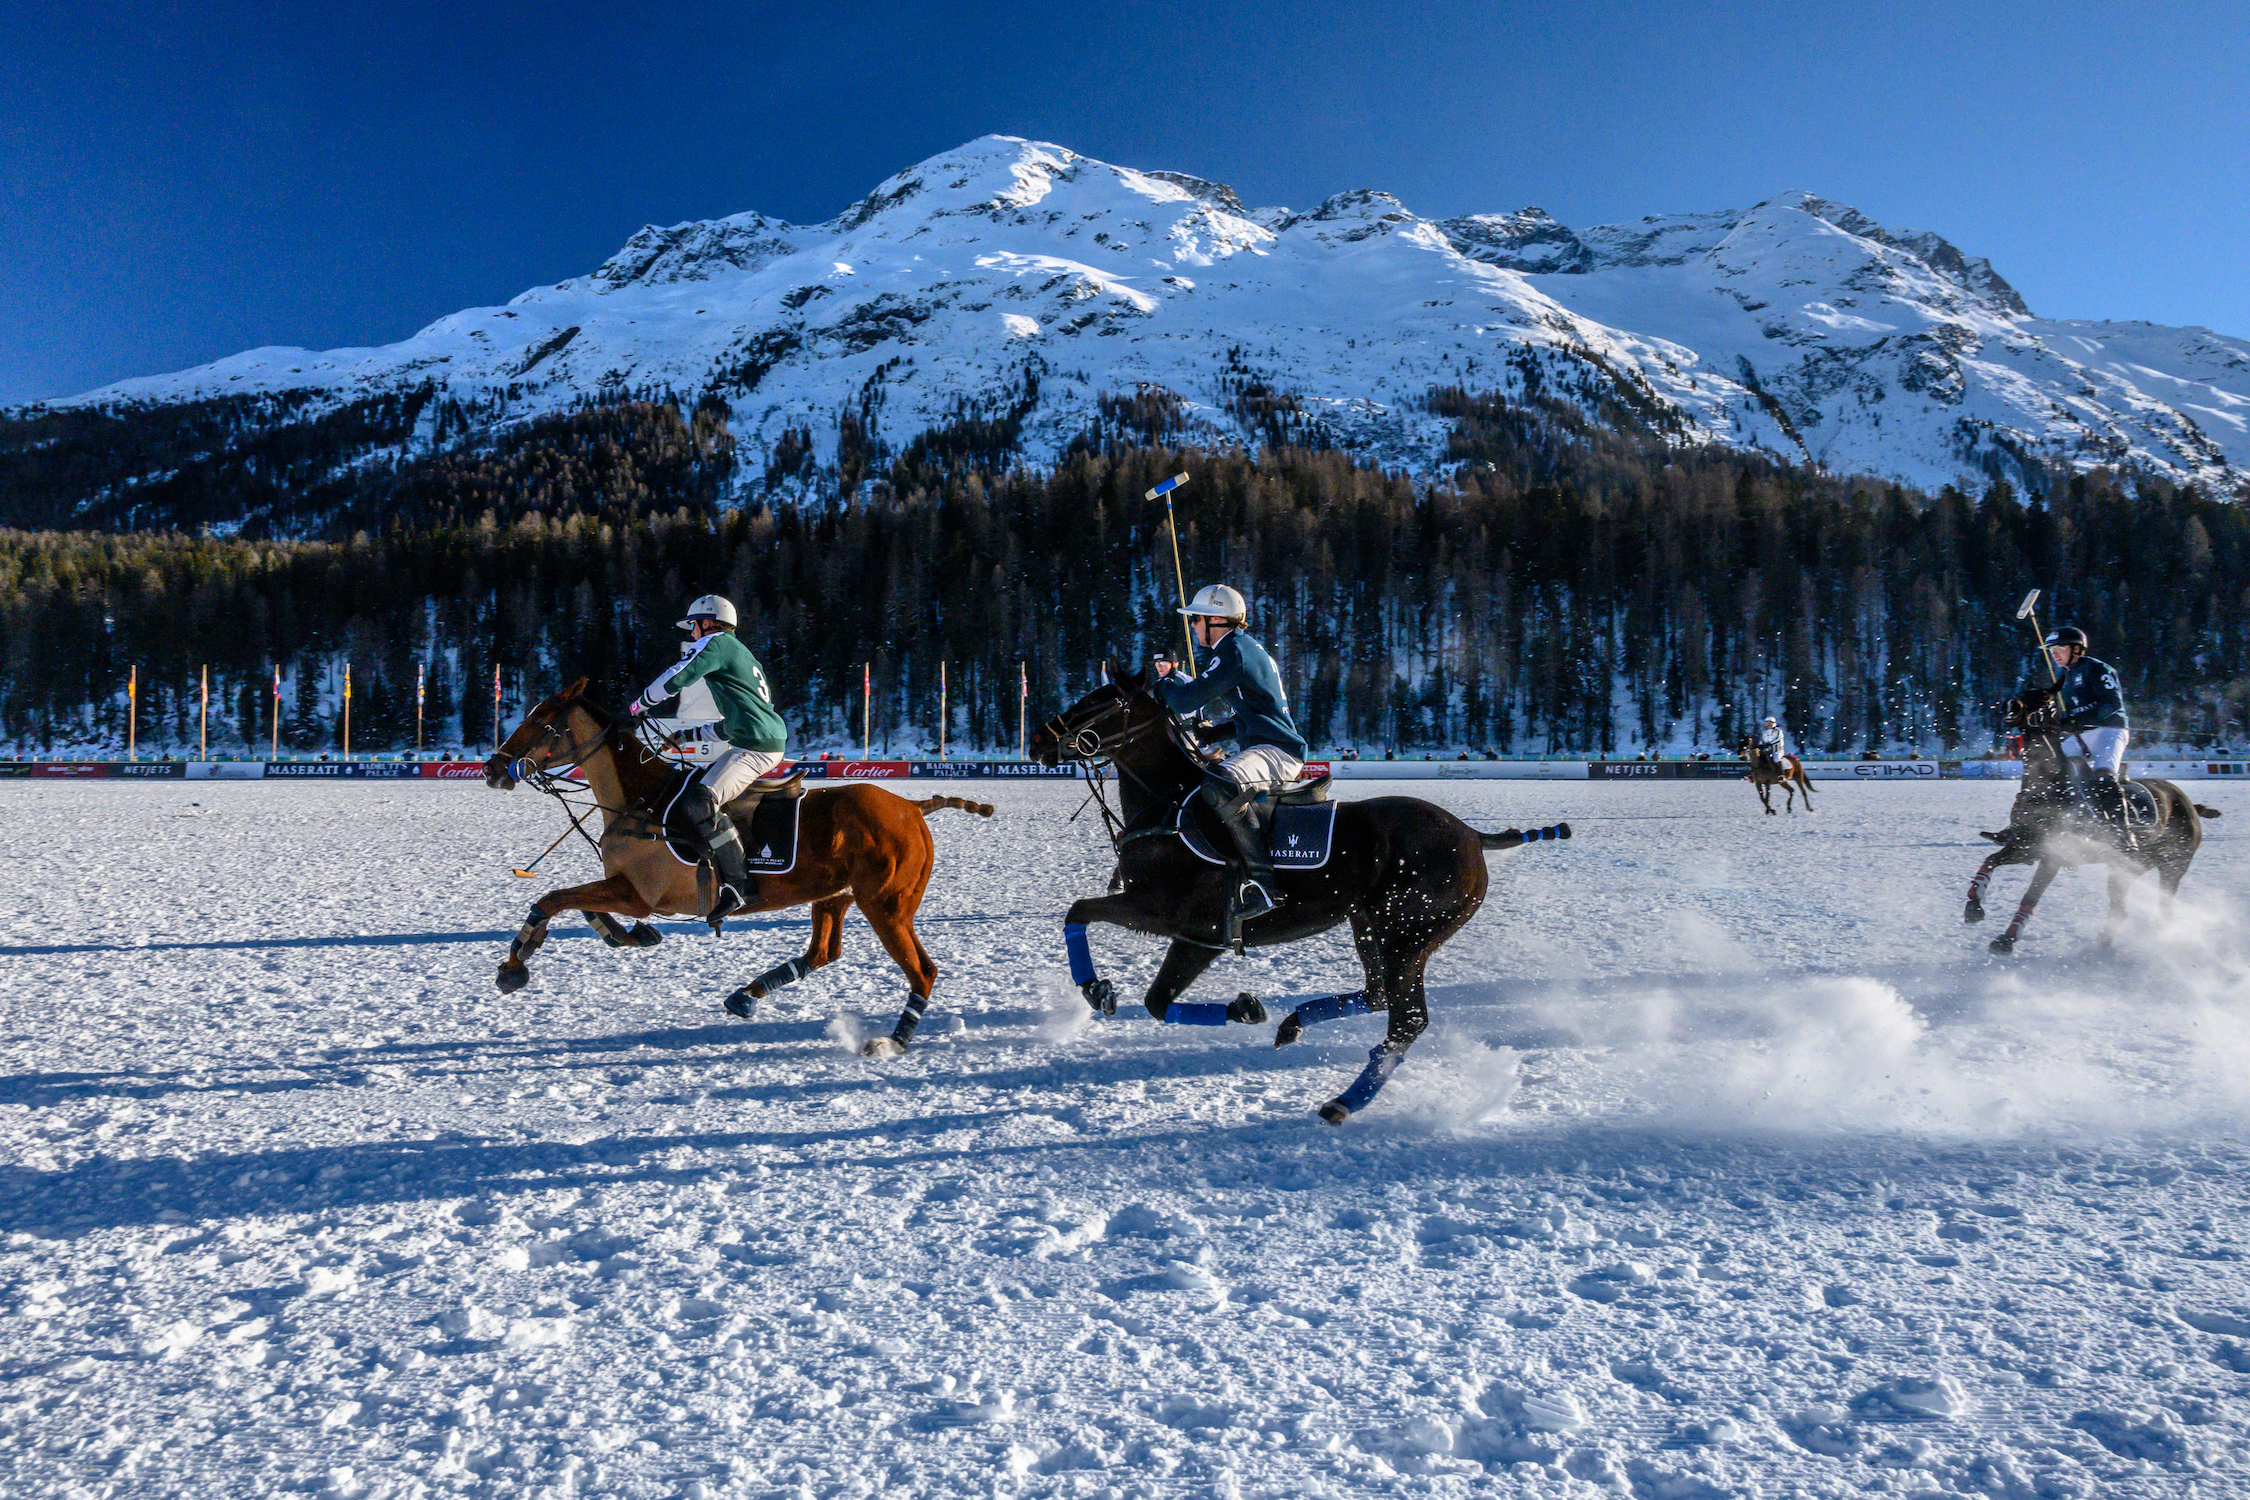 Snow Polo World Cup in St. Moritz, Switzerland